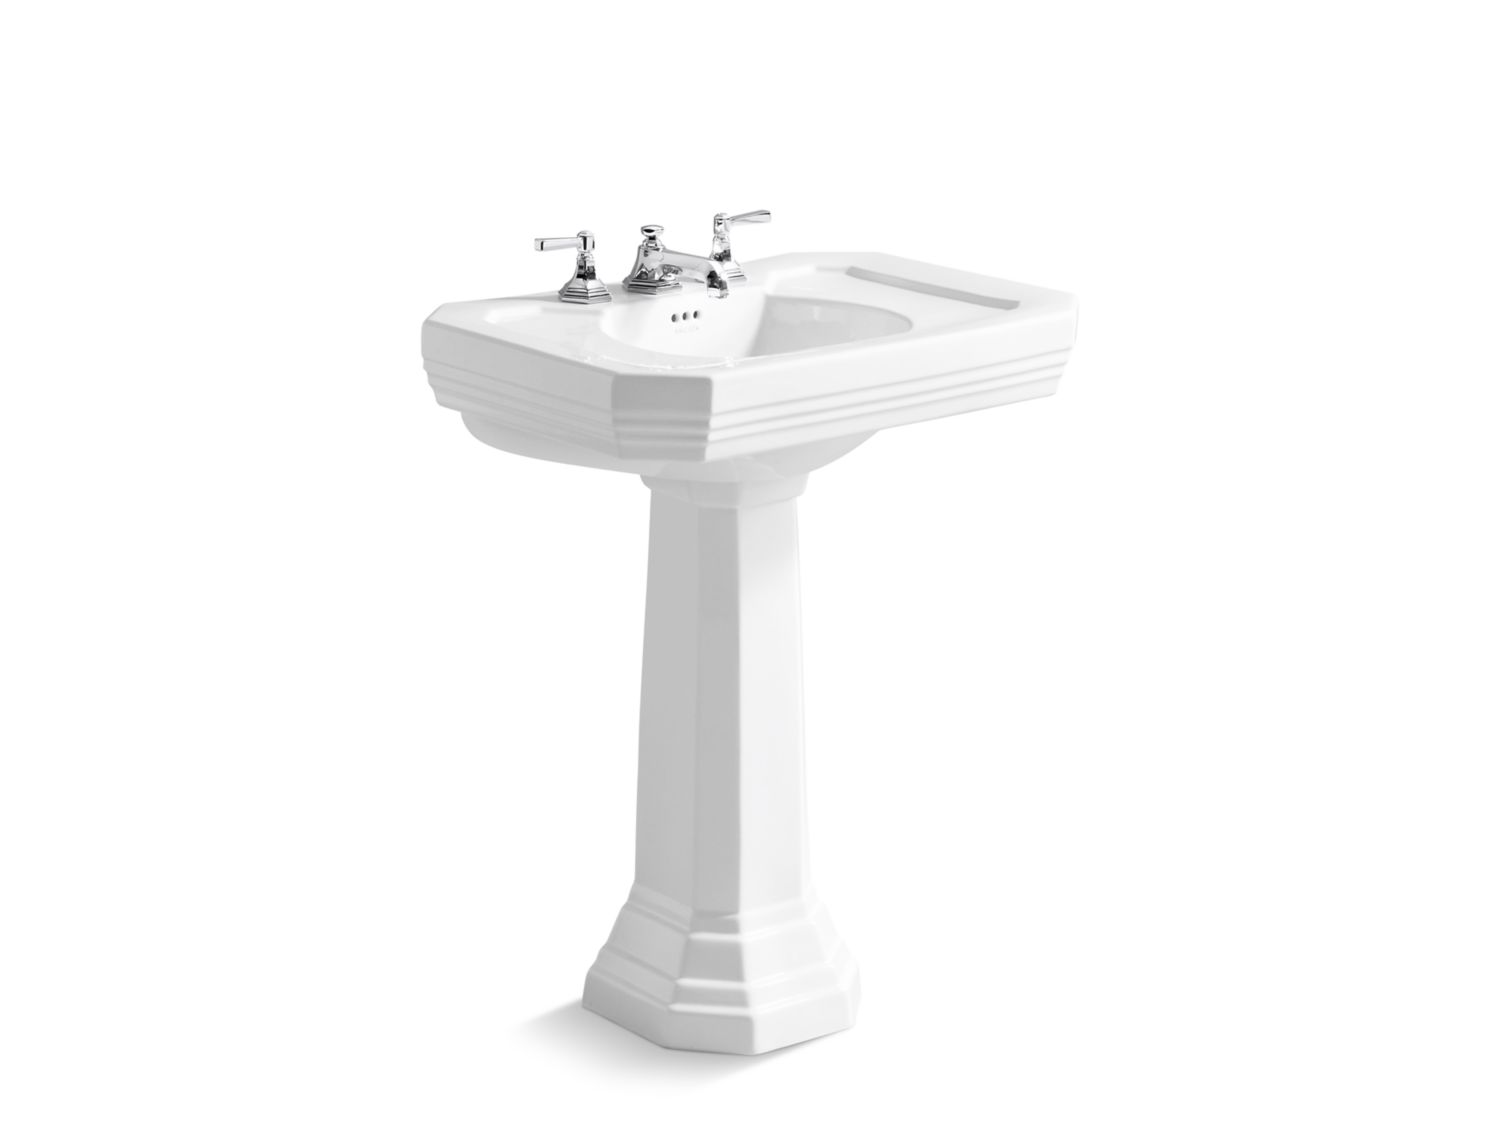 sink china k with overflow bathroom home n b combo sinks kohler bath white basin archer in the depot combos pedestal vitreous